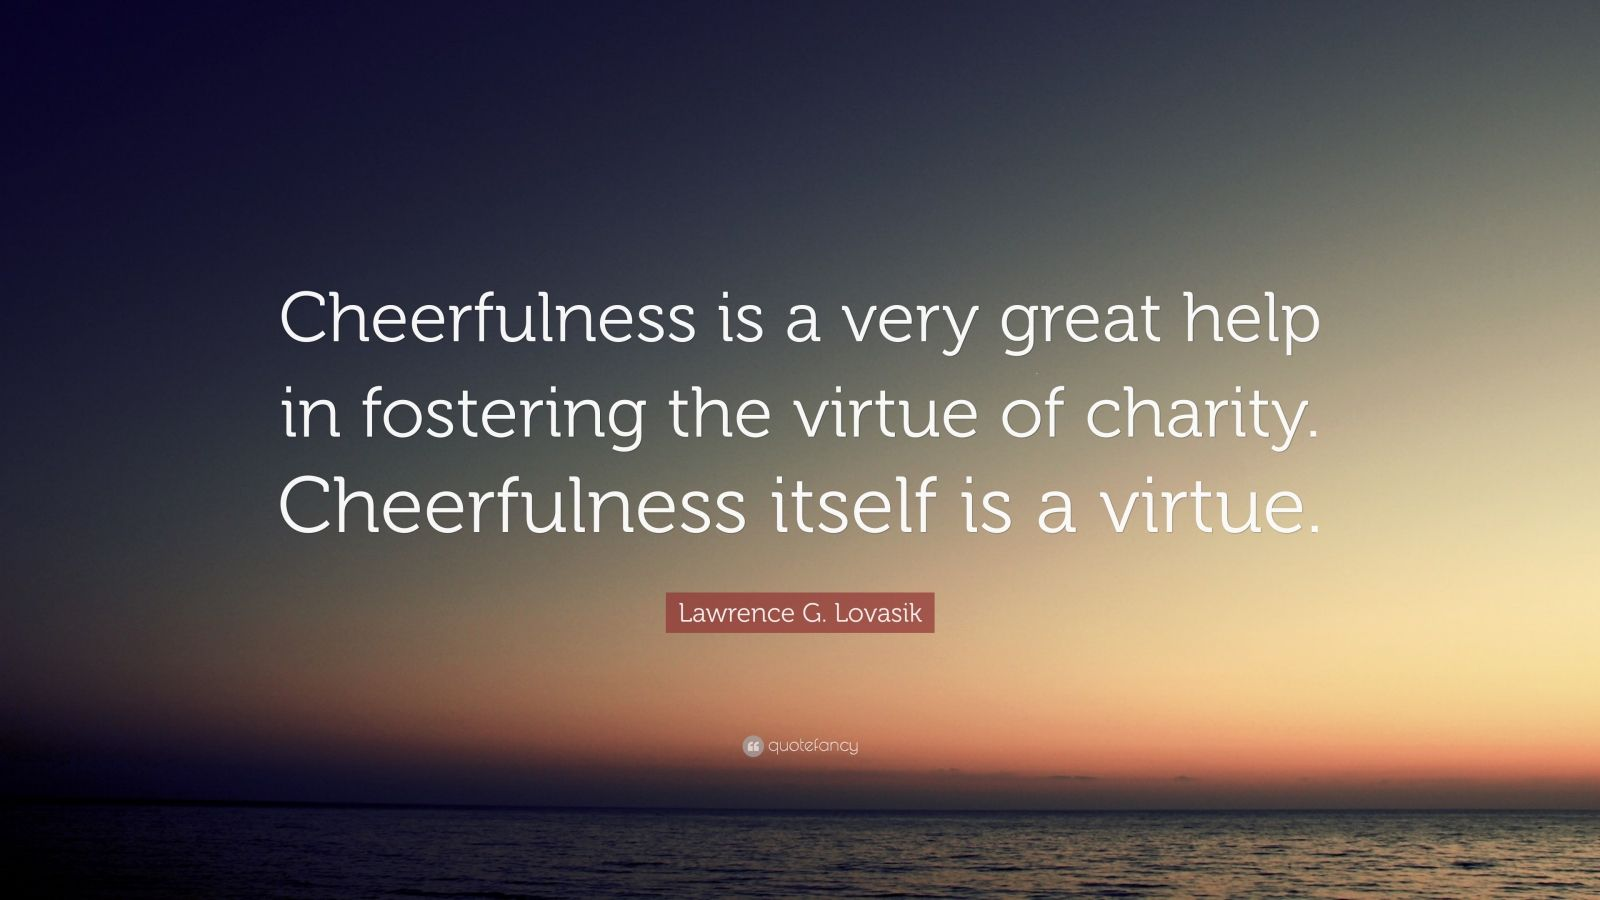 """Lawrence G. Lovasik Quote: """"Cheerfulness is a very great help in fostering the virtue of charity. Cheerfulness itself is a virtue."""""""